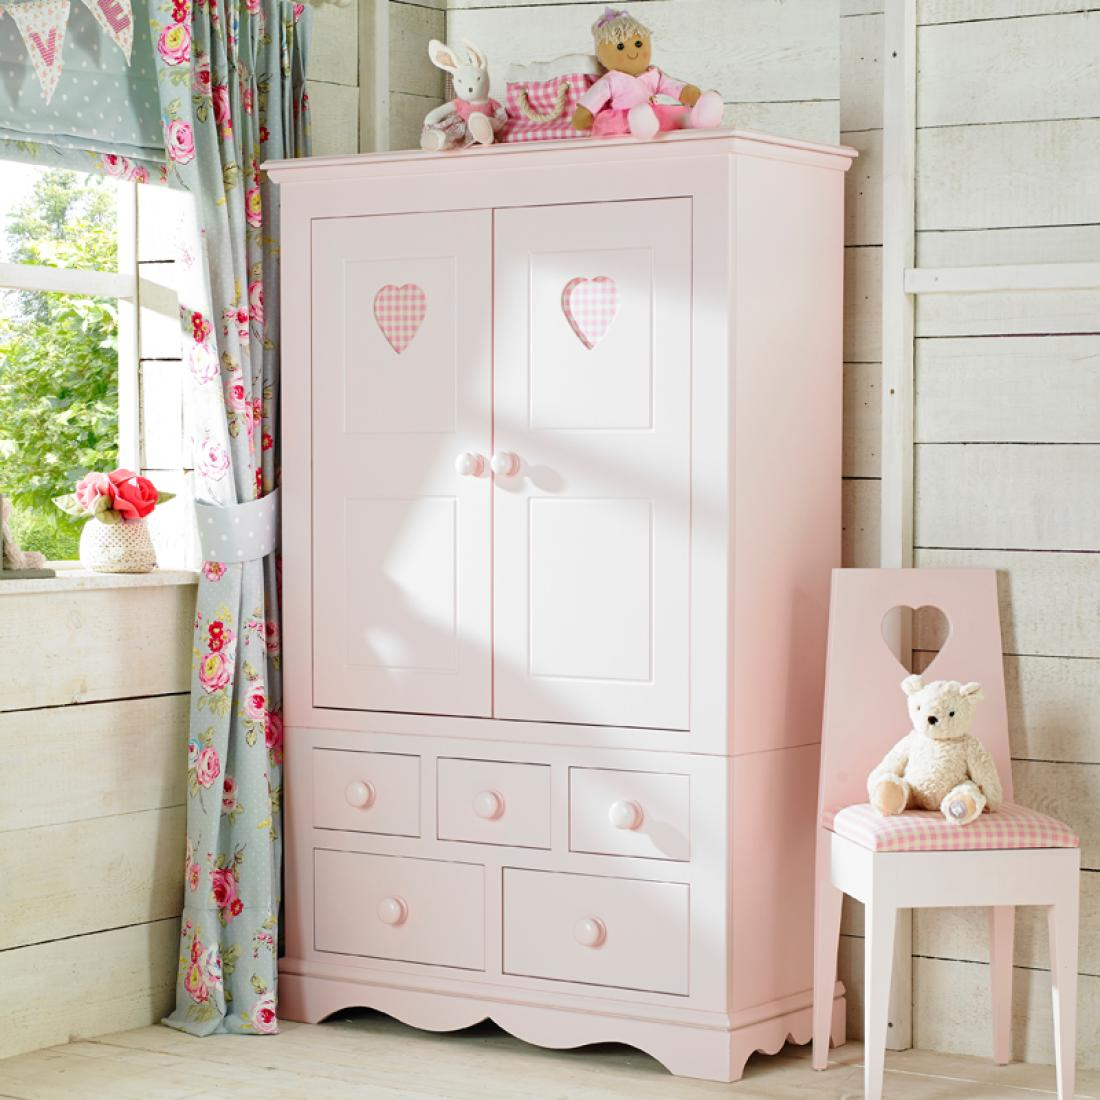 Looby Lou Combination Wardrobe | Childrens Wardrobe ...